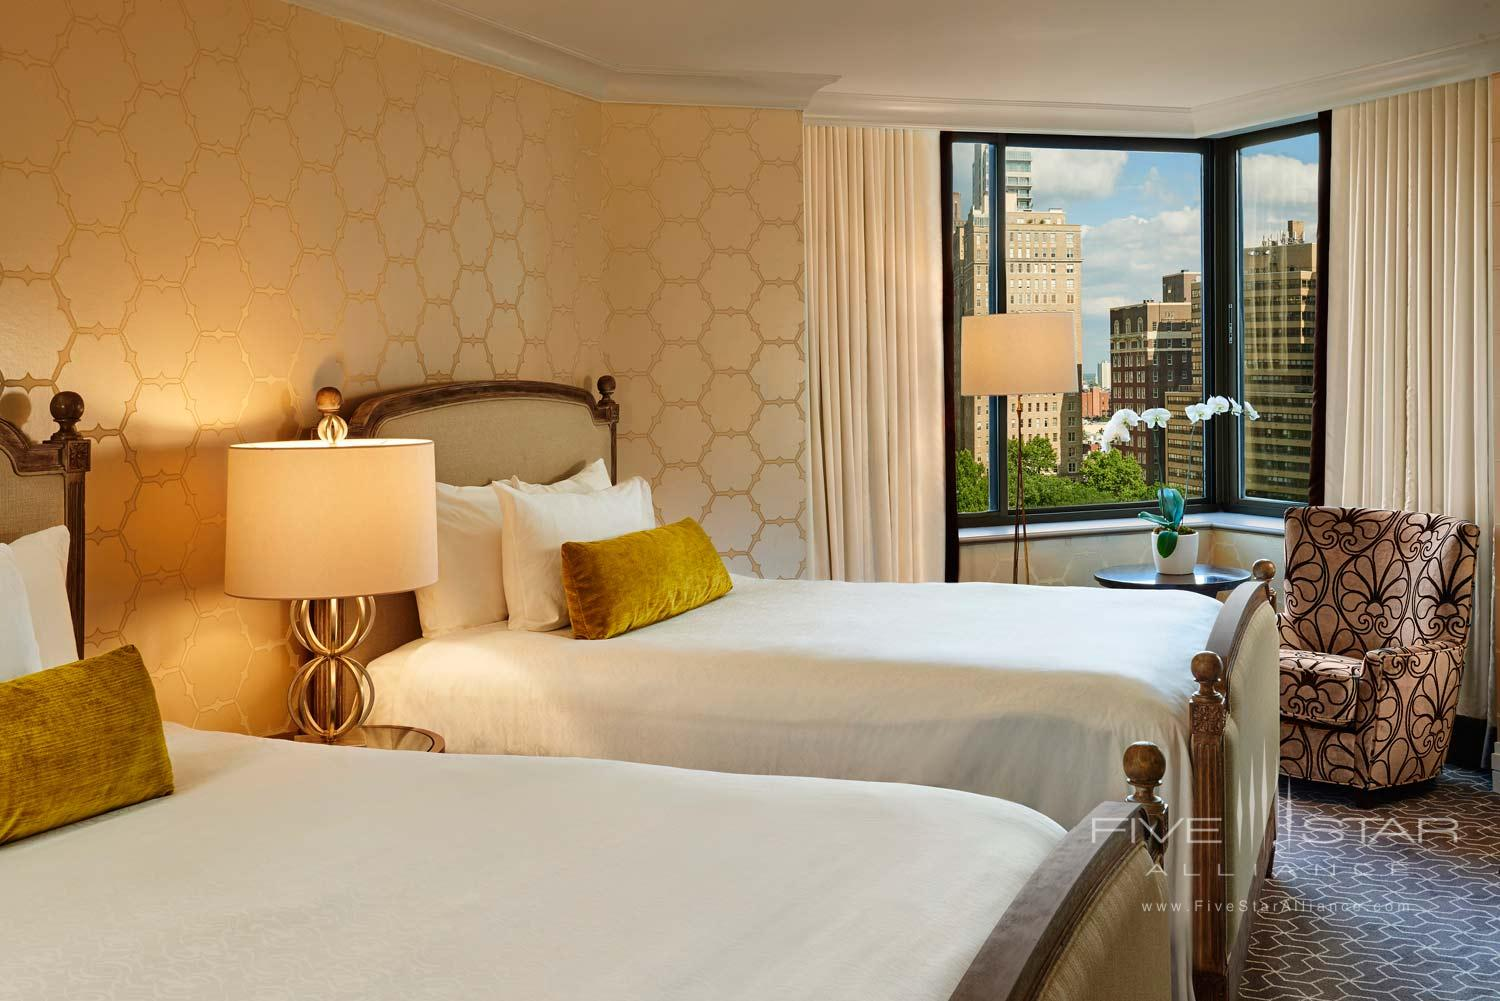 Rittenhouse Suite at Rittenhouse Hotel, Philadelphia, PA